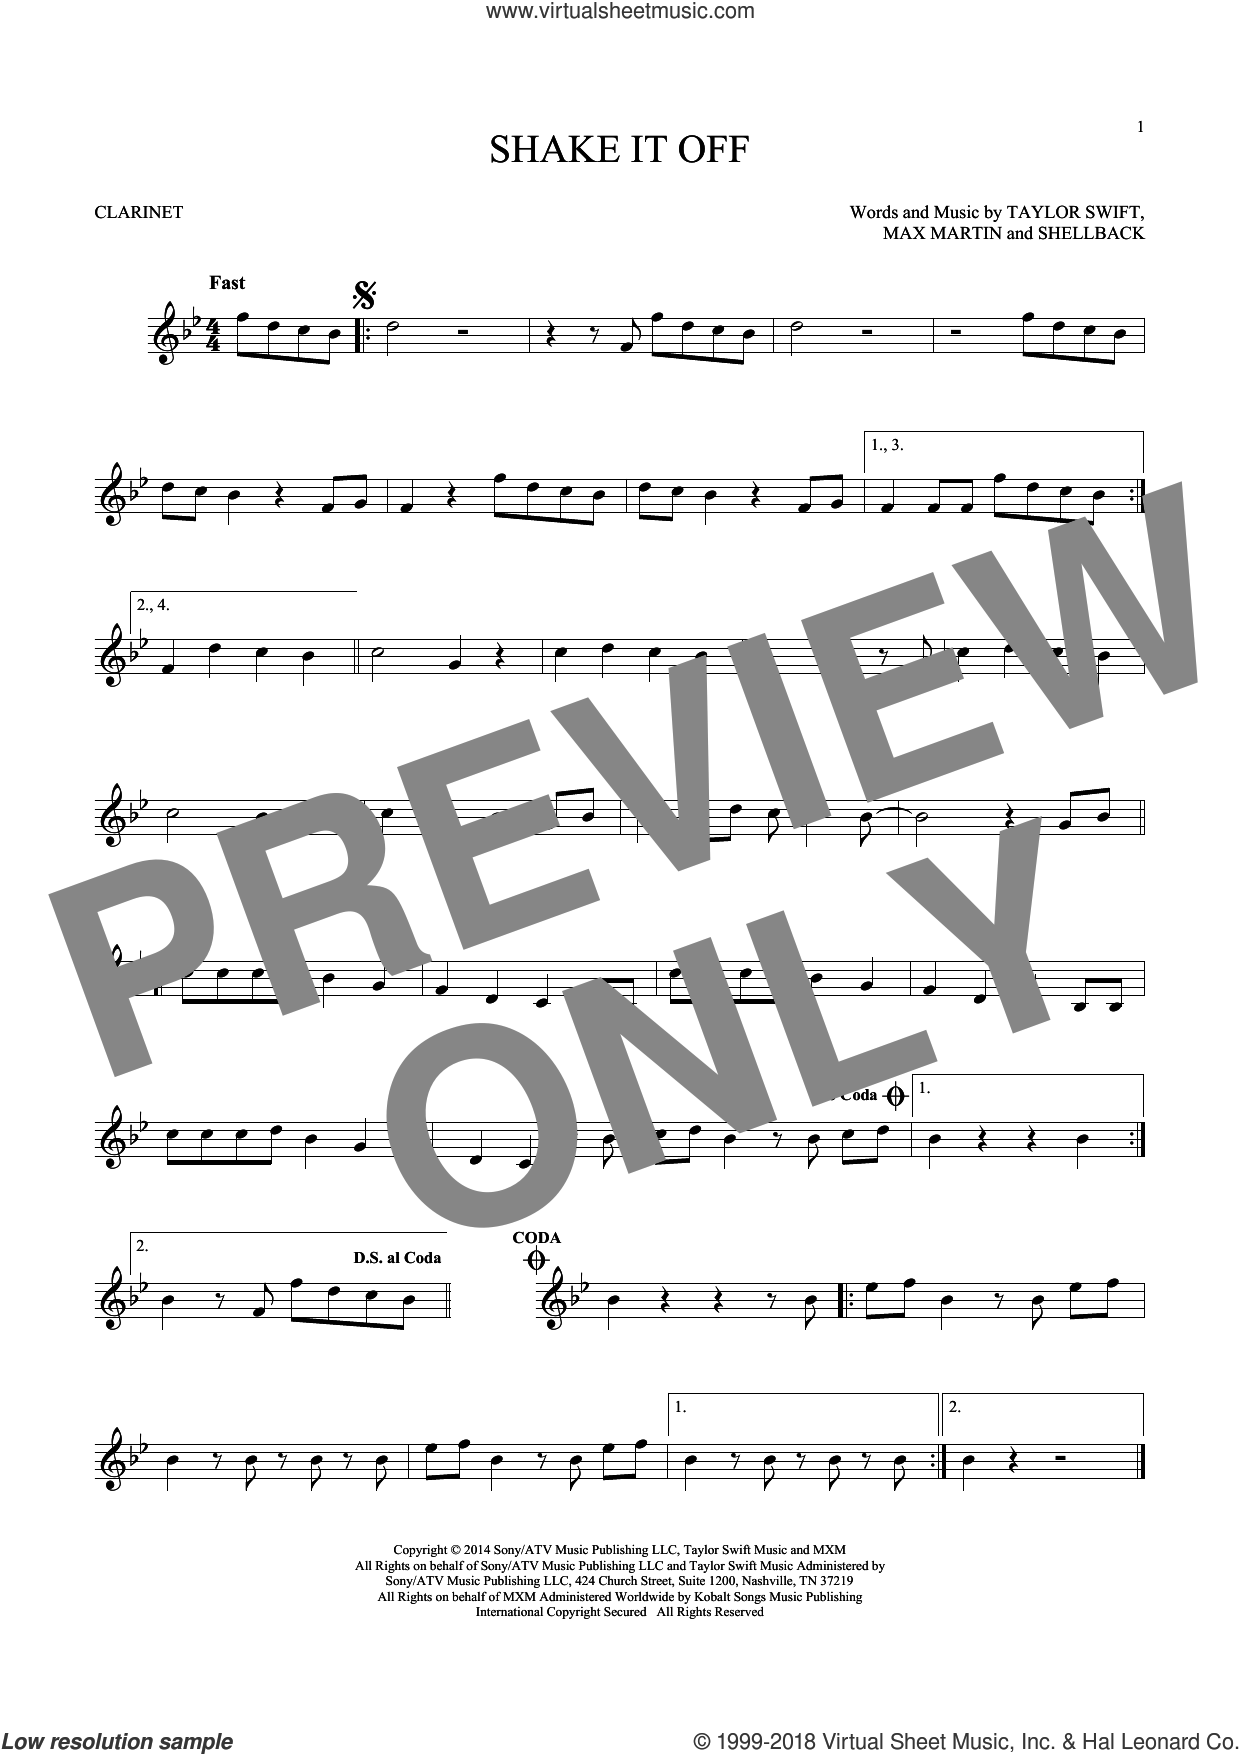 Shake It Off sheet music for clarinet solo by Taylor Swift, Johan Schuster, Max Martin and Shellback, intermediate skill level